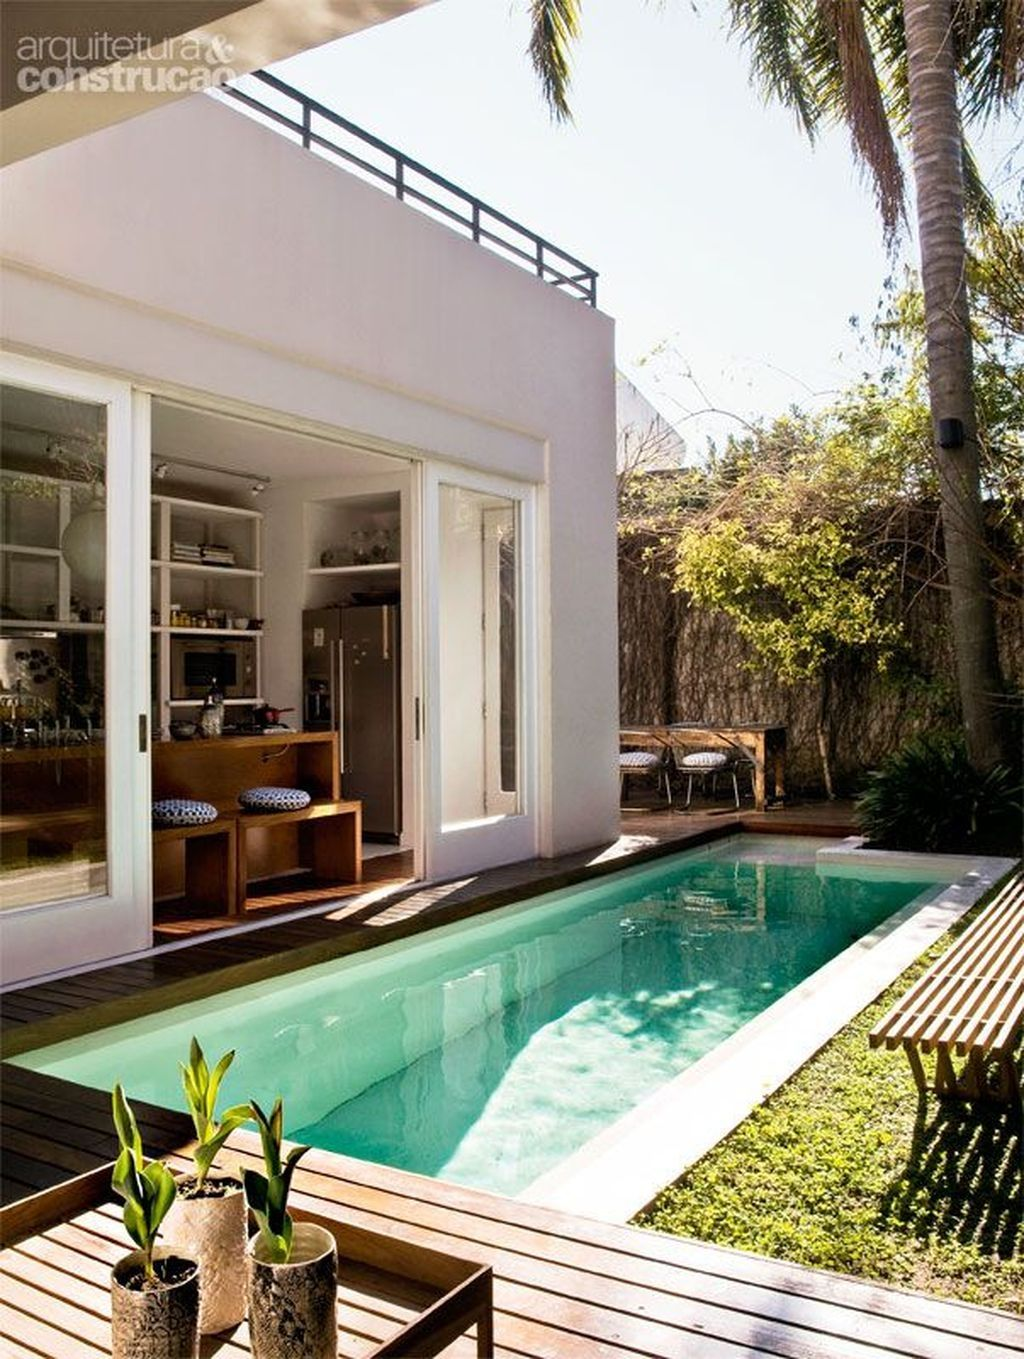 47 Comfy Outdoor Garden Ideas With Small Pool Small Pool Design Pool Houses Small Pools